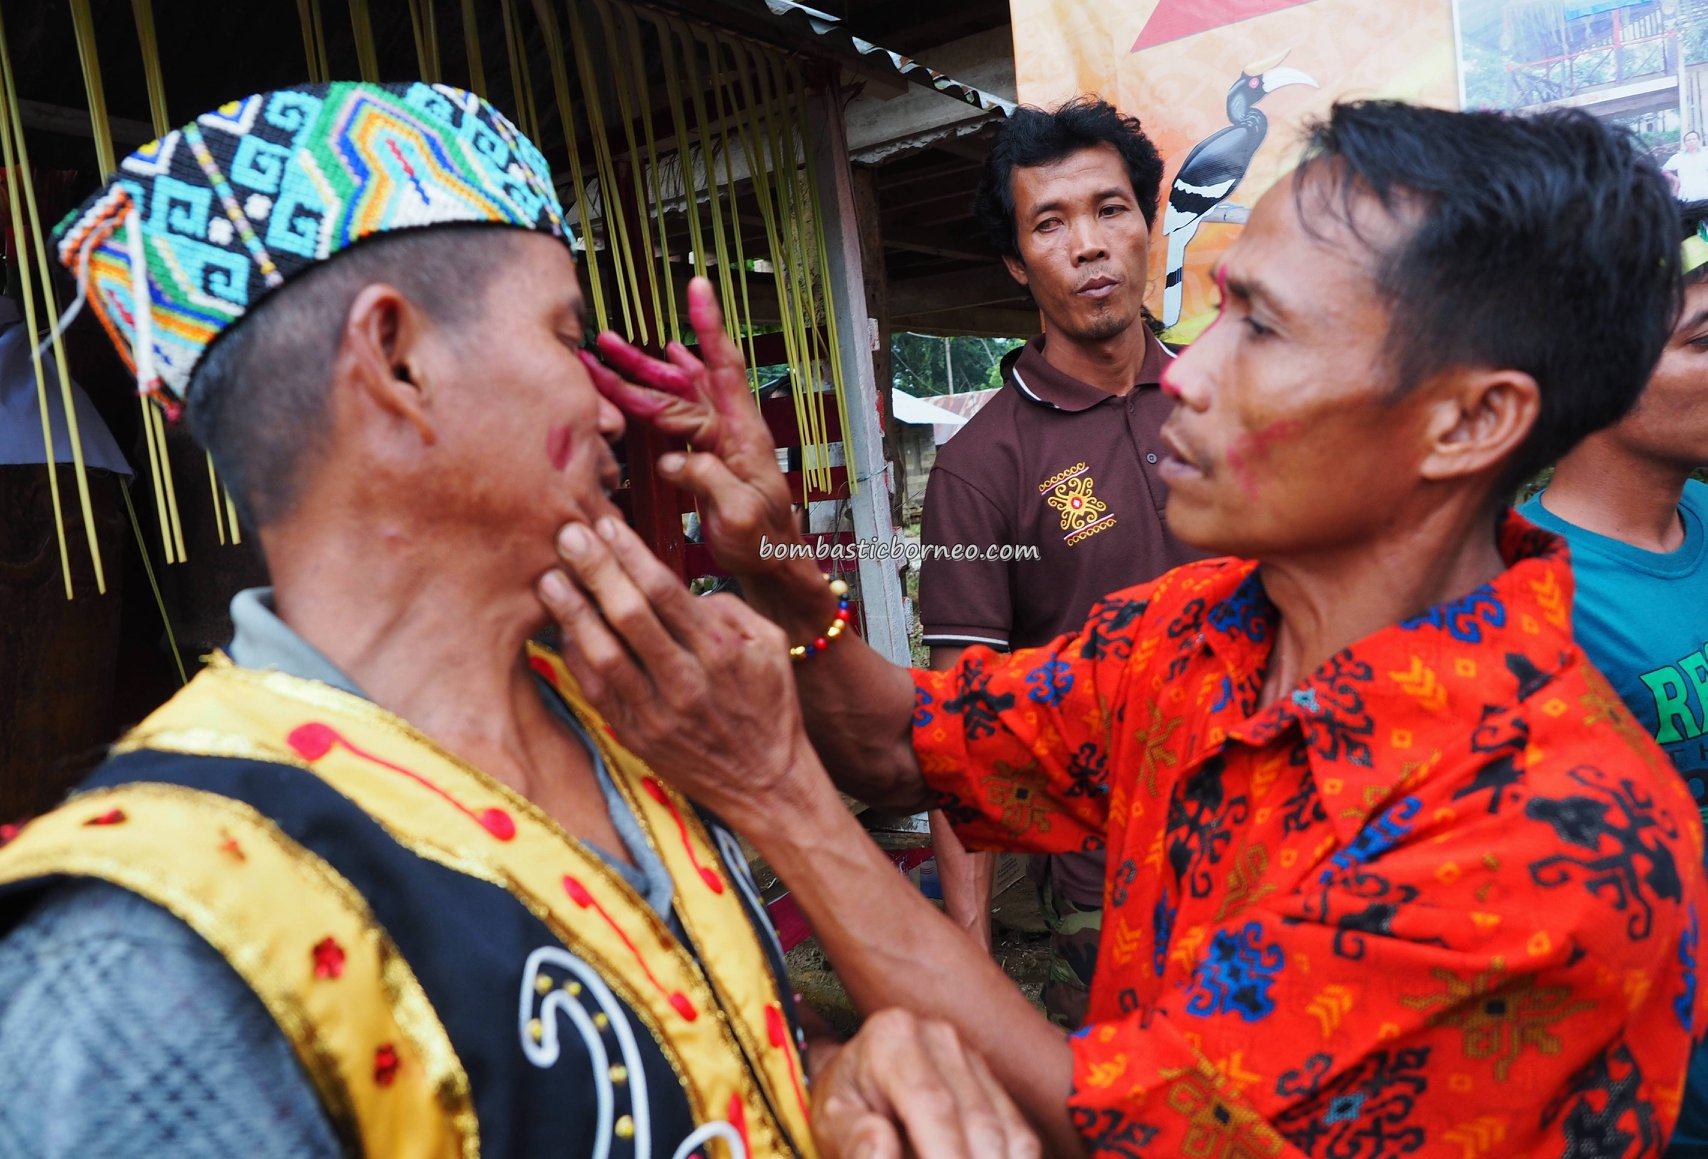 Nyabakng, authentic village, indigenous, traditional, skull feeding, destination, Bengkayang, Indonesia, Kalimantan Barat, Dusun Laek, native, tribe, tribal, travel guide, 婆罗洲西加里曼丹, 原住民丰收节日